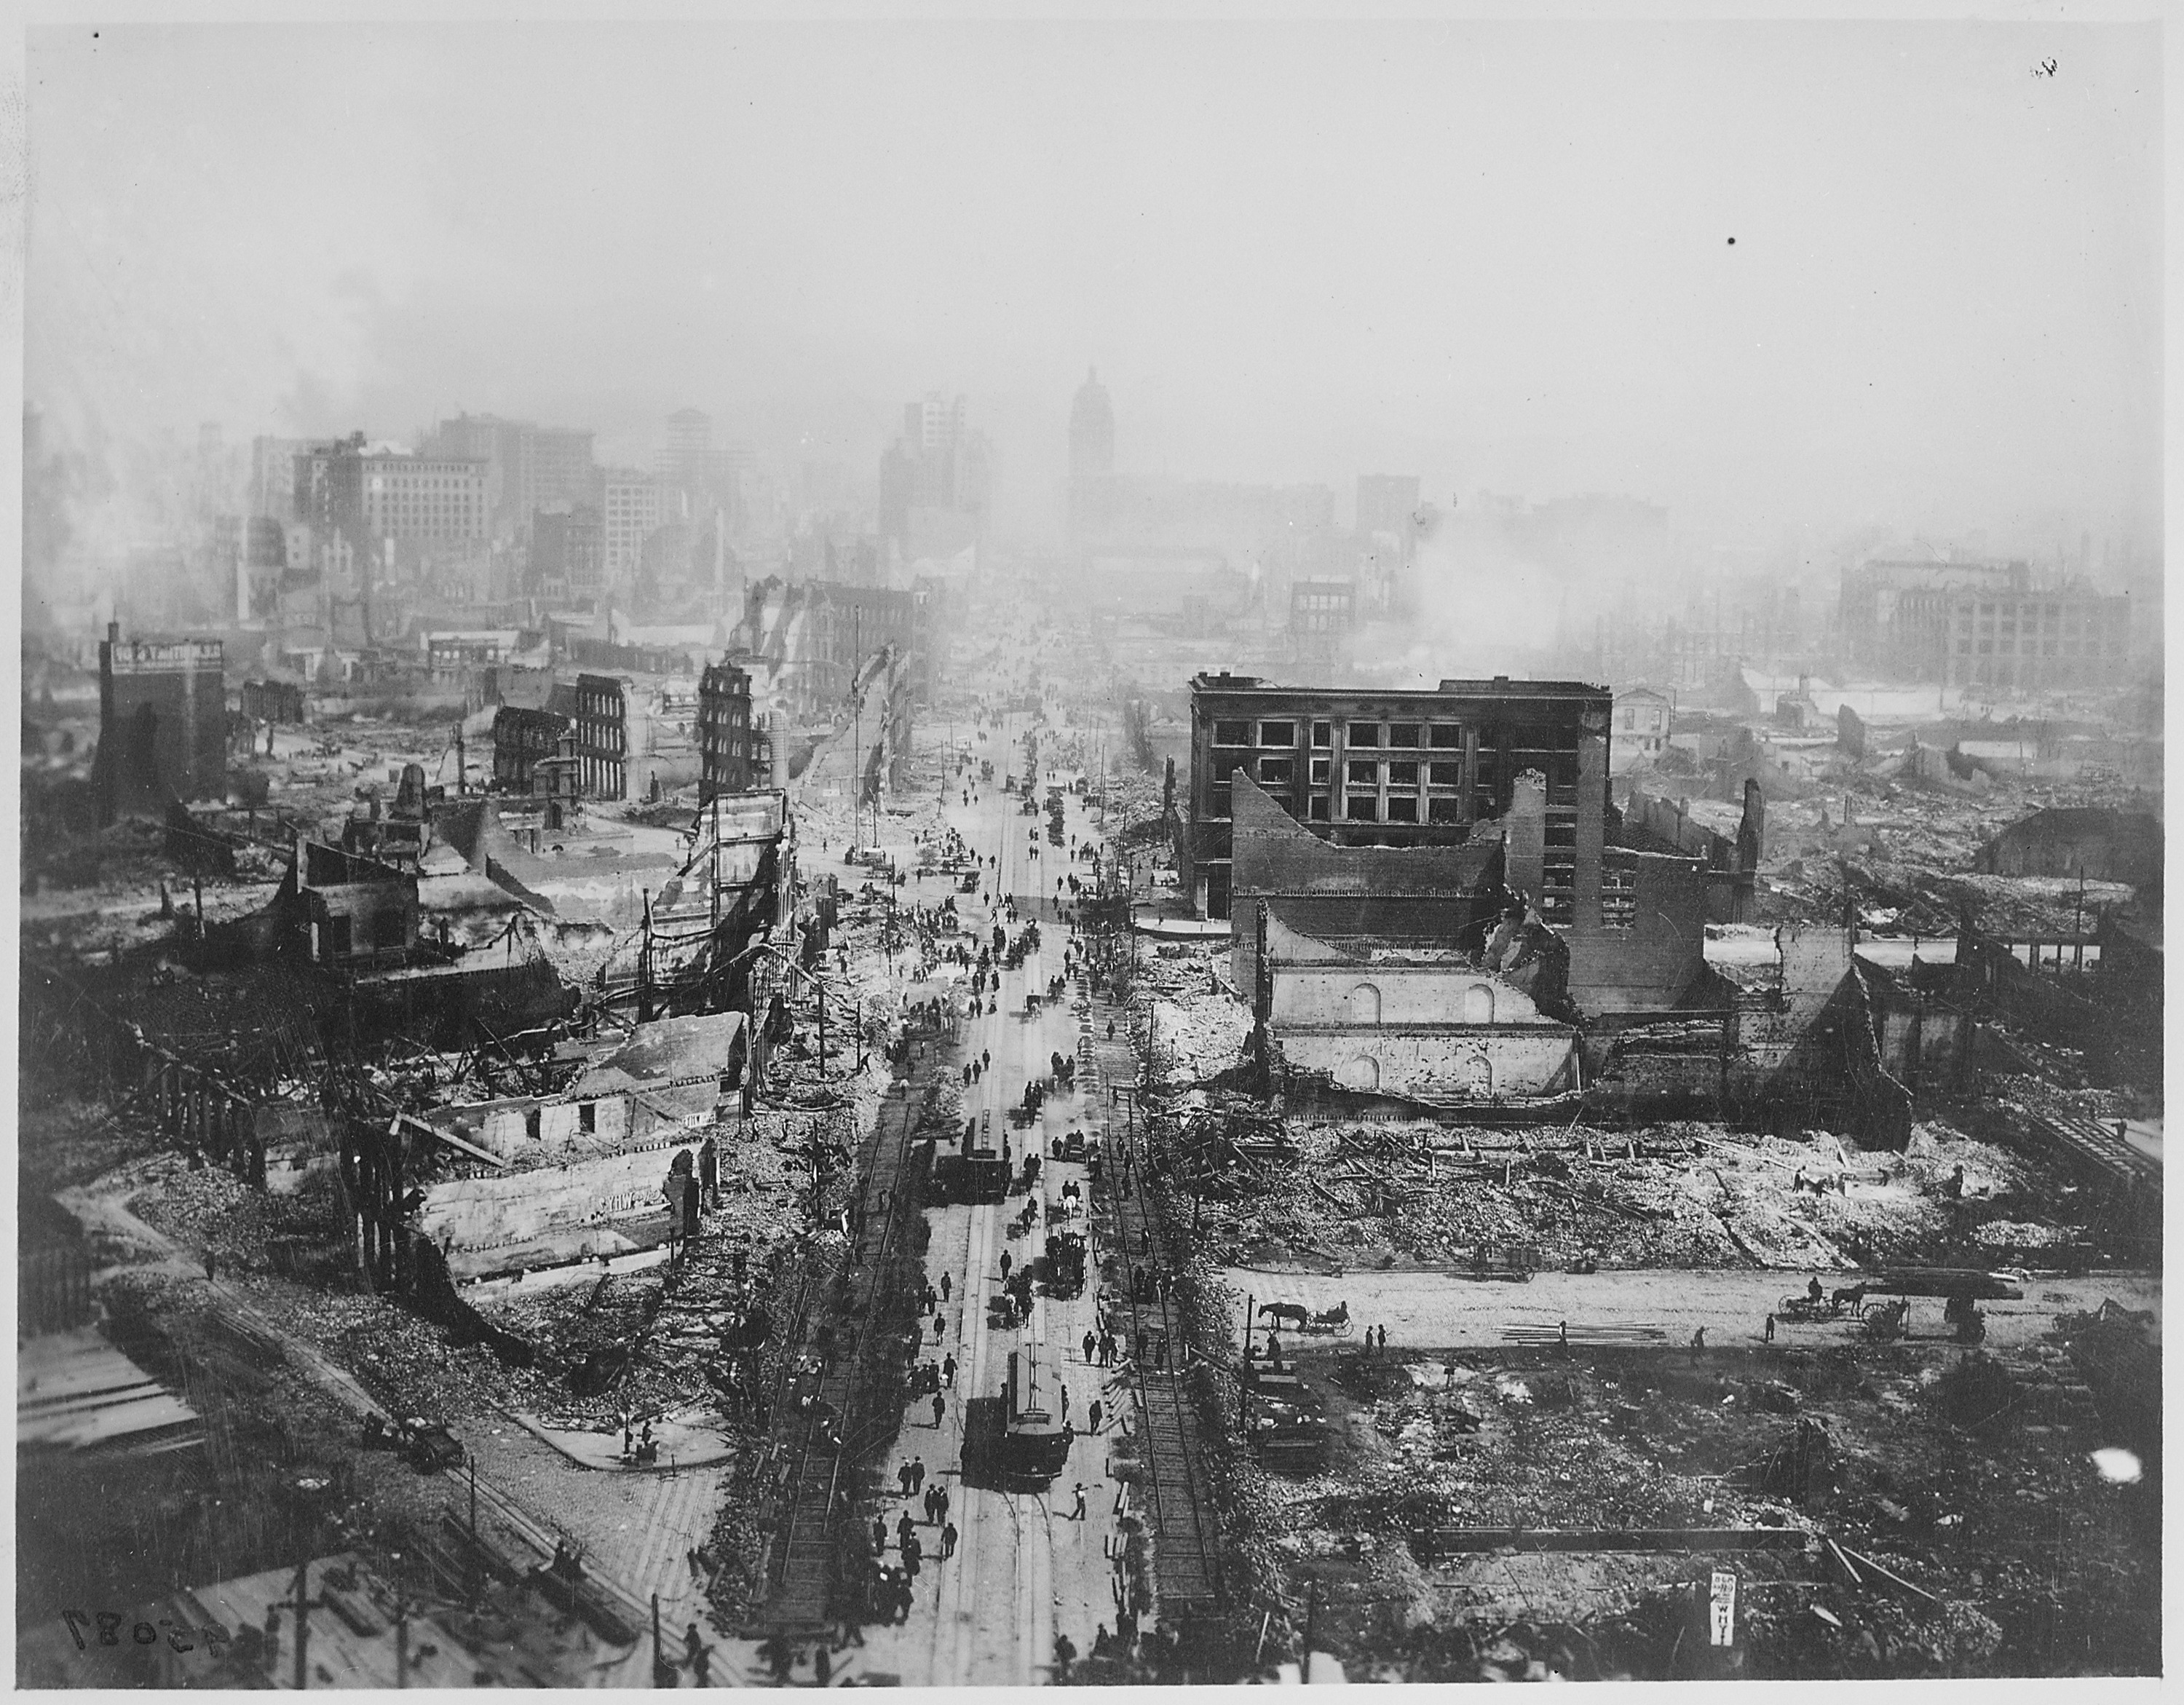 earthquake san francisco 1906 The 1906 san francisco earthquake struck the coast of northern california at 5:12 am on wednesday, april 18 with an estimated moment magnitude of 79 and a maximum mercalli intensity of xi.